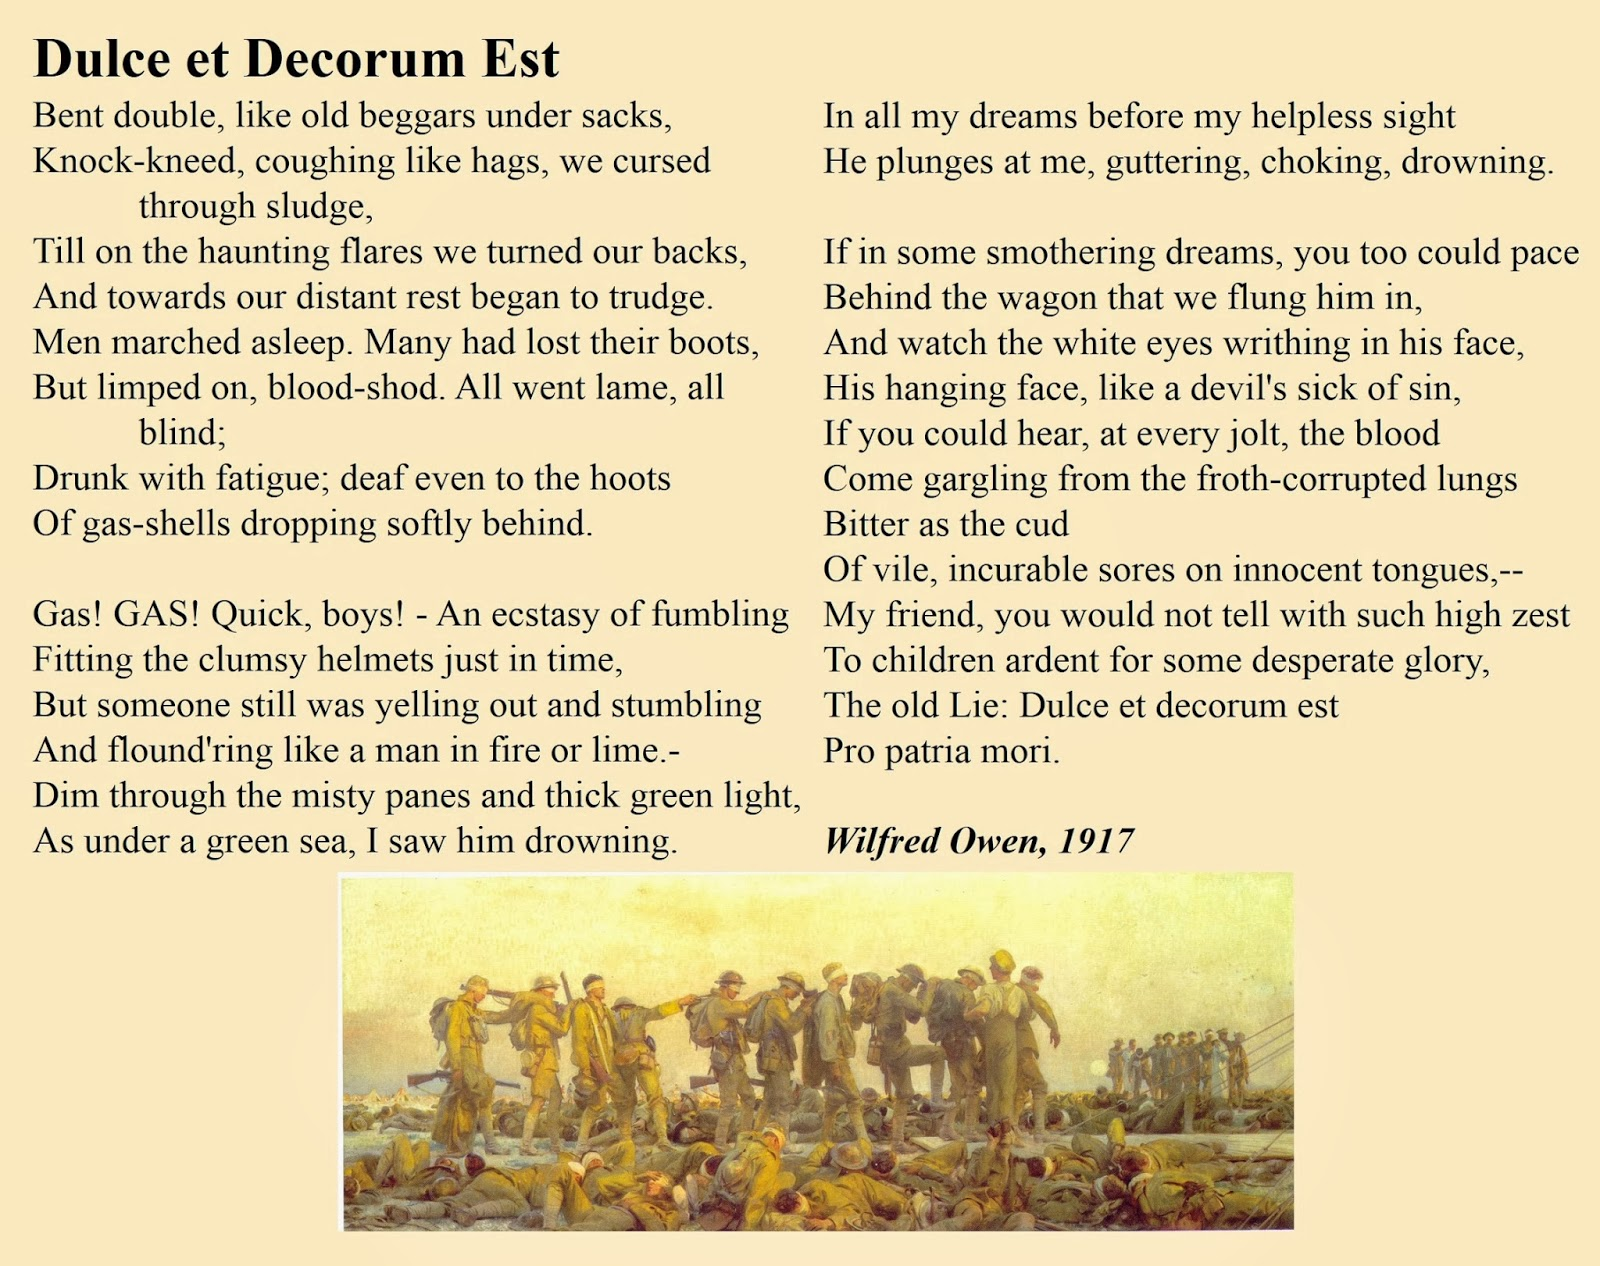 owen dulce et decorum est Grade 9 analysis of dulce et decorum est by wilfred owen, his most famous poem - duration: 28:15 mr salles teaches english 16,566 views 28:15.